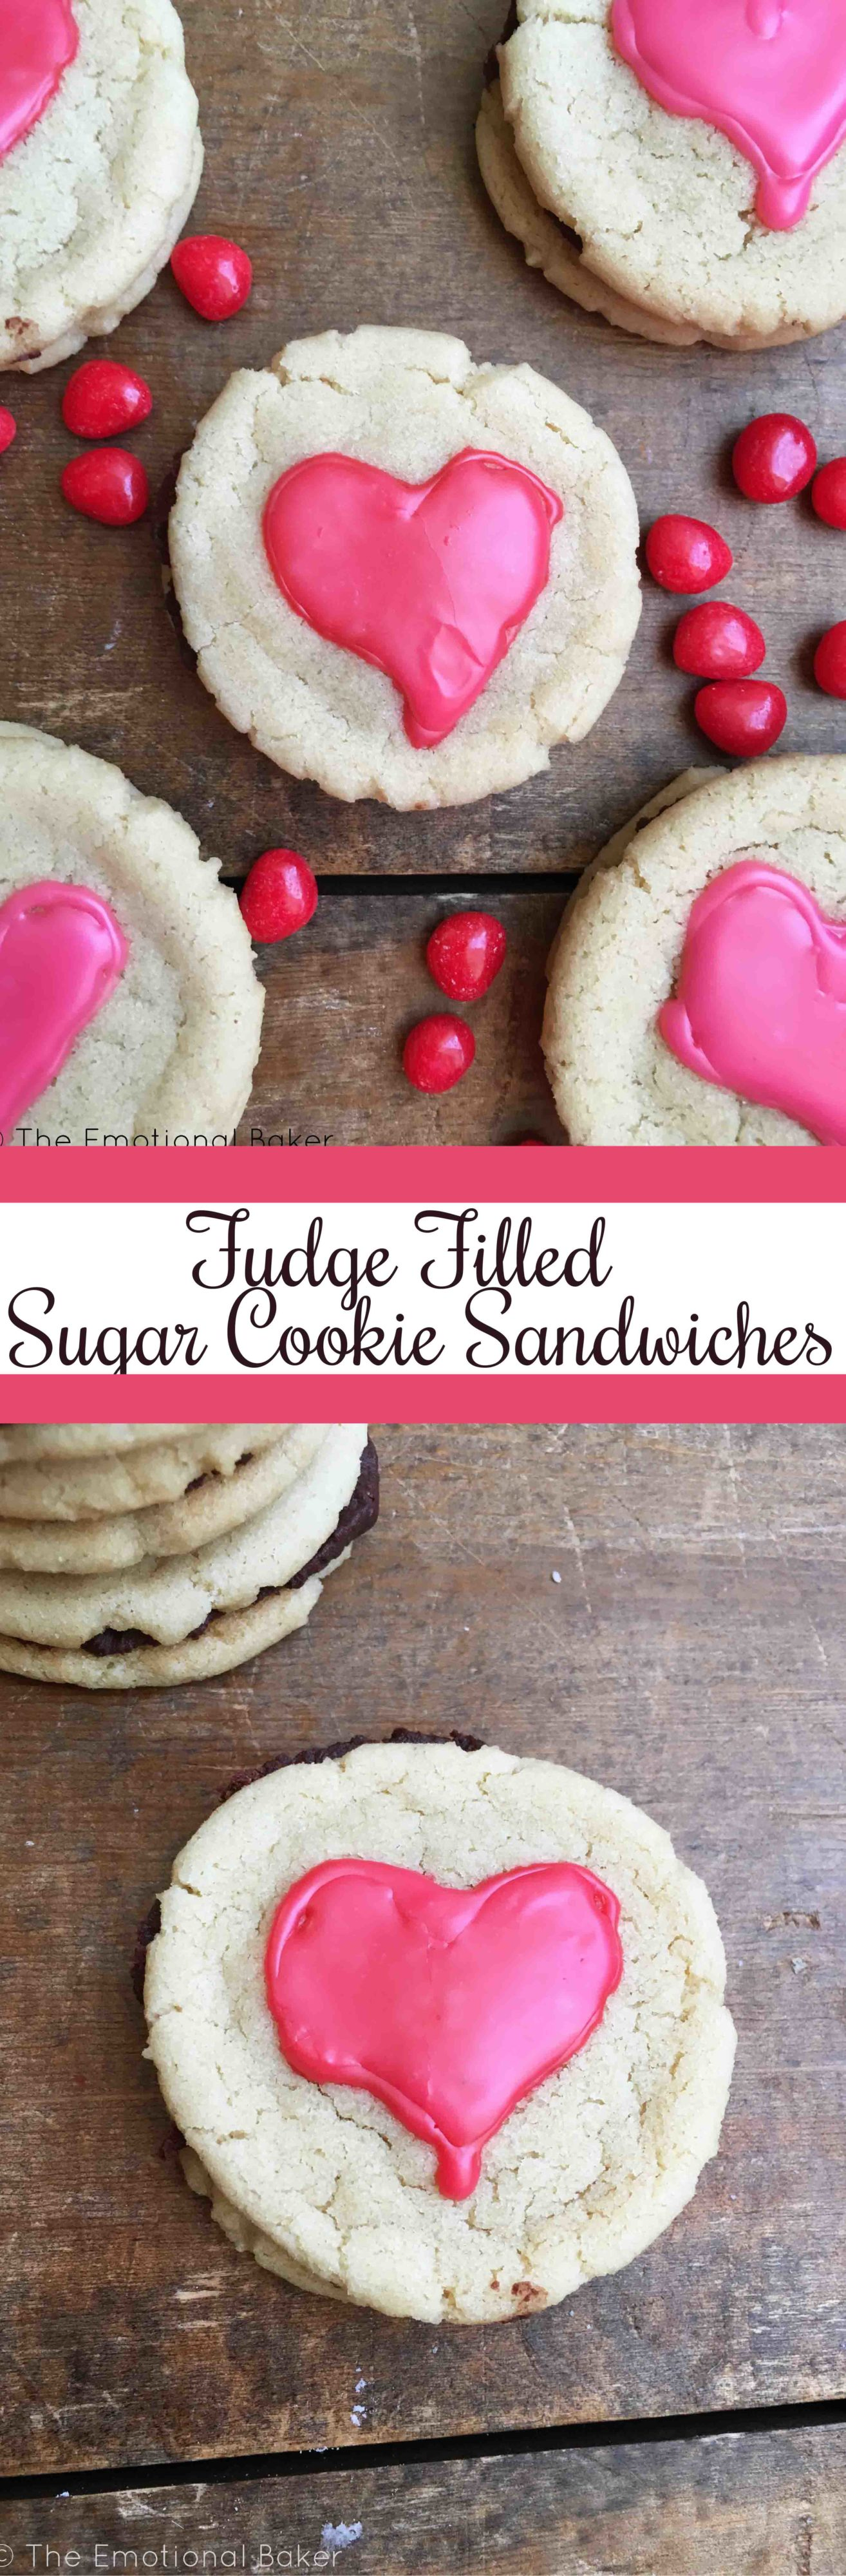 Fudge Filled Sugar Cookie Sandwiches